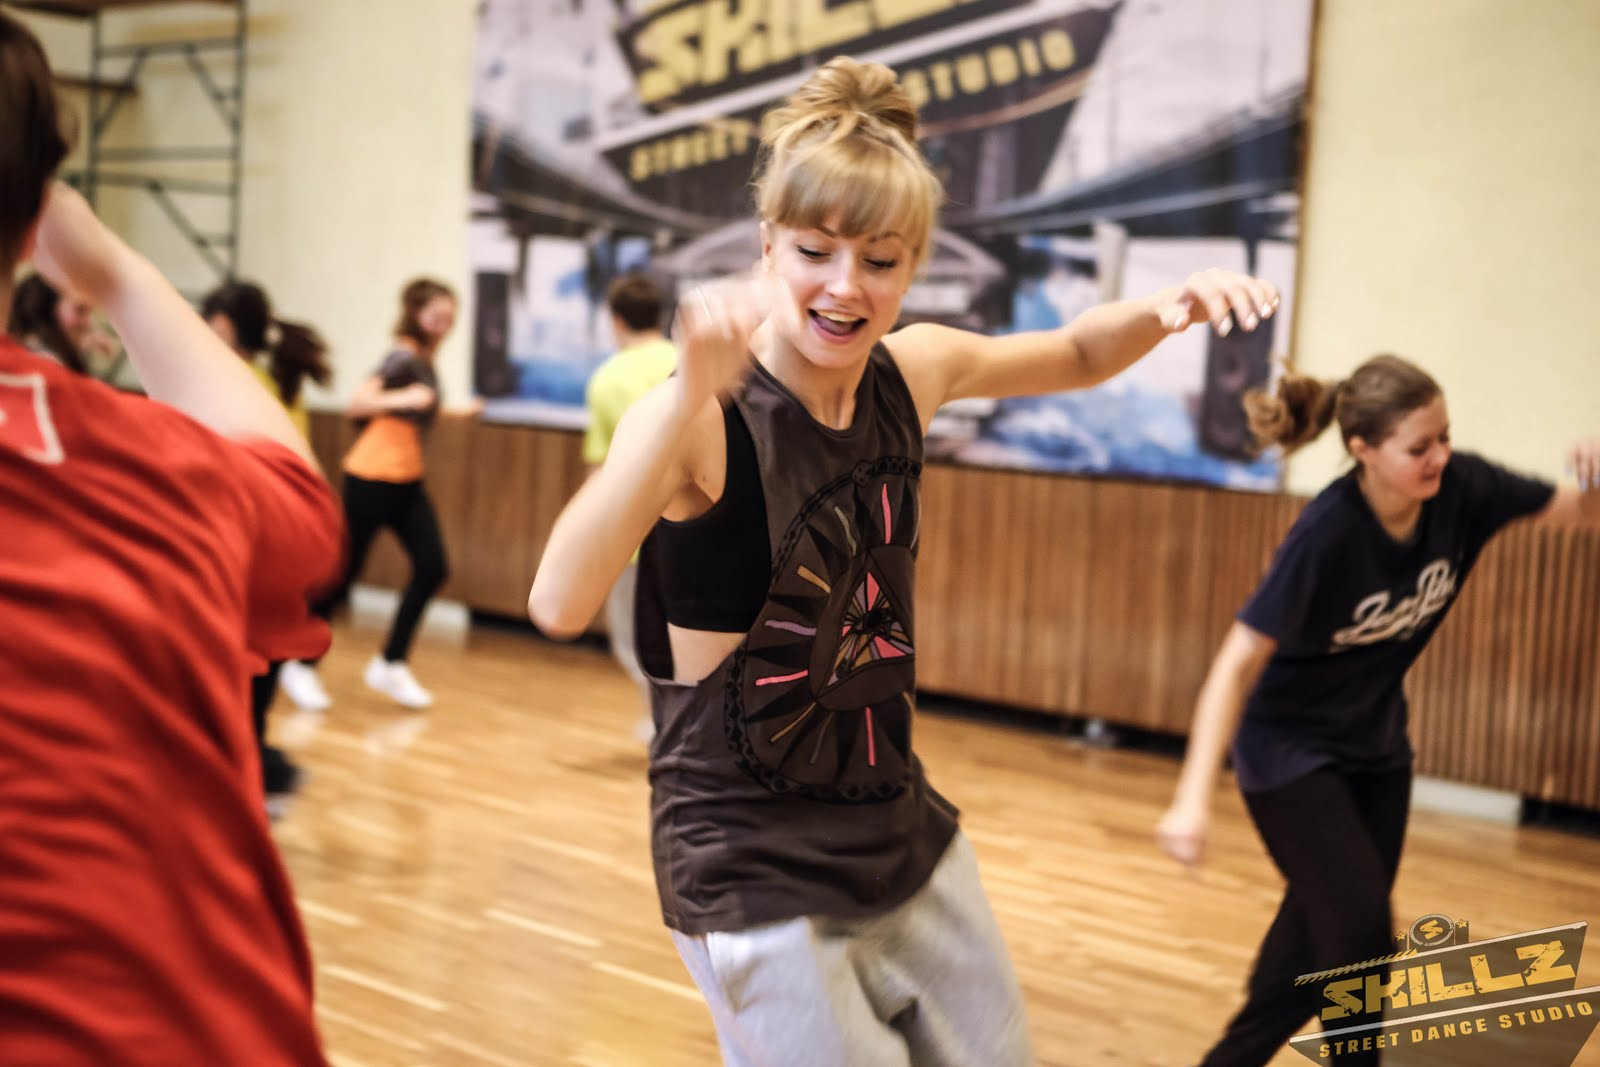 Workshop with Kusch (Russia) - IMG_4822.jpg